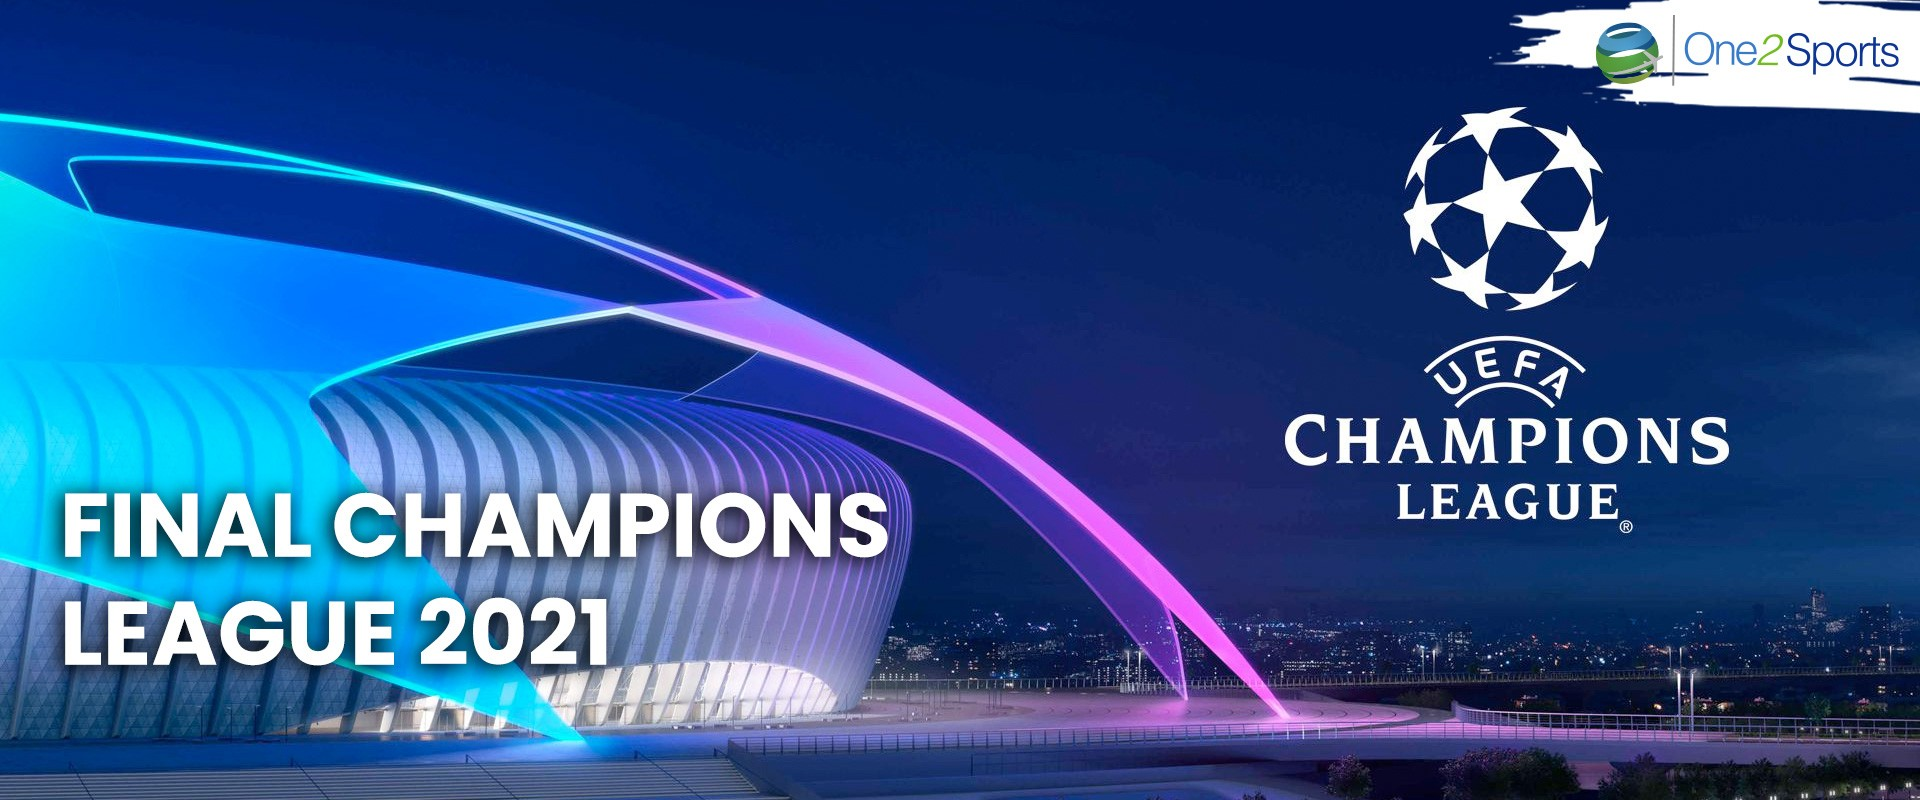 Final Champions League 2021 - 6 noches